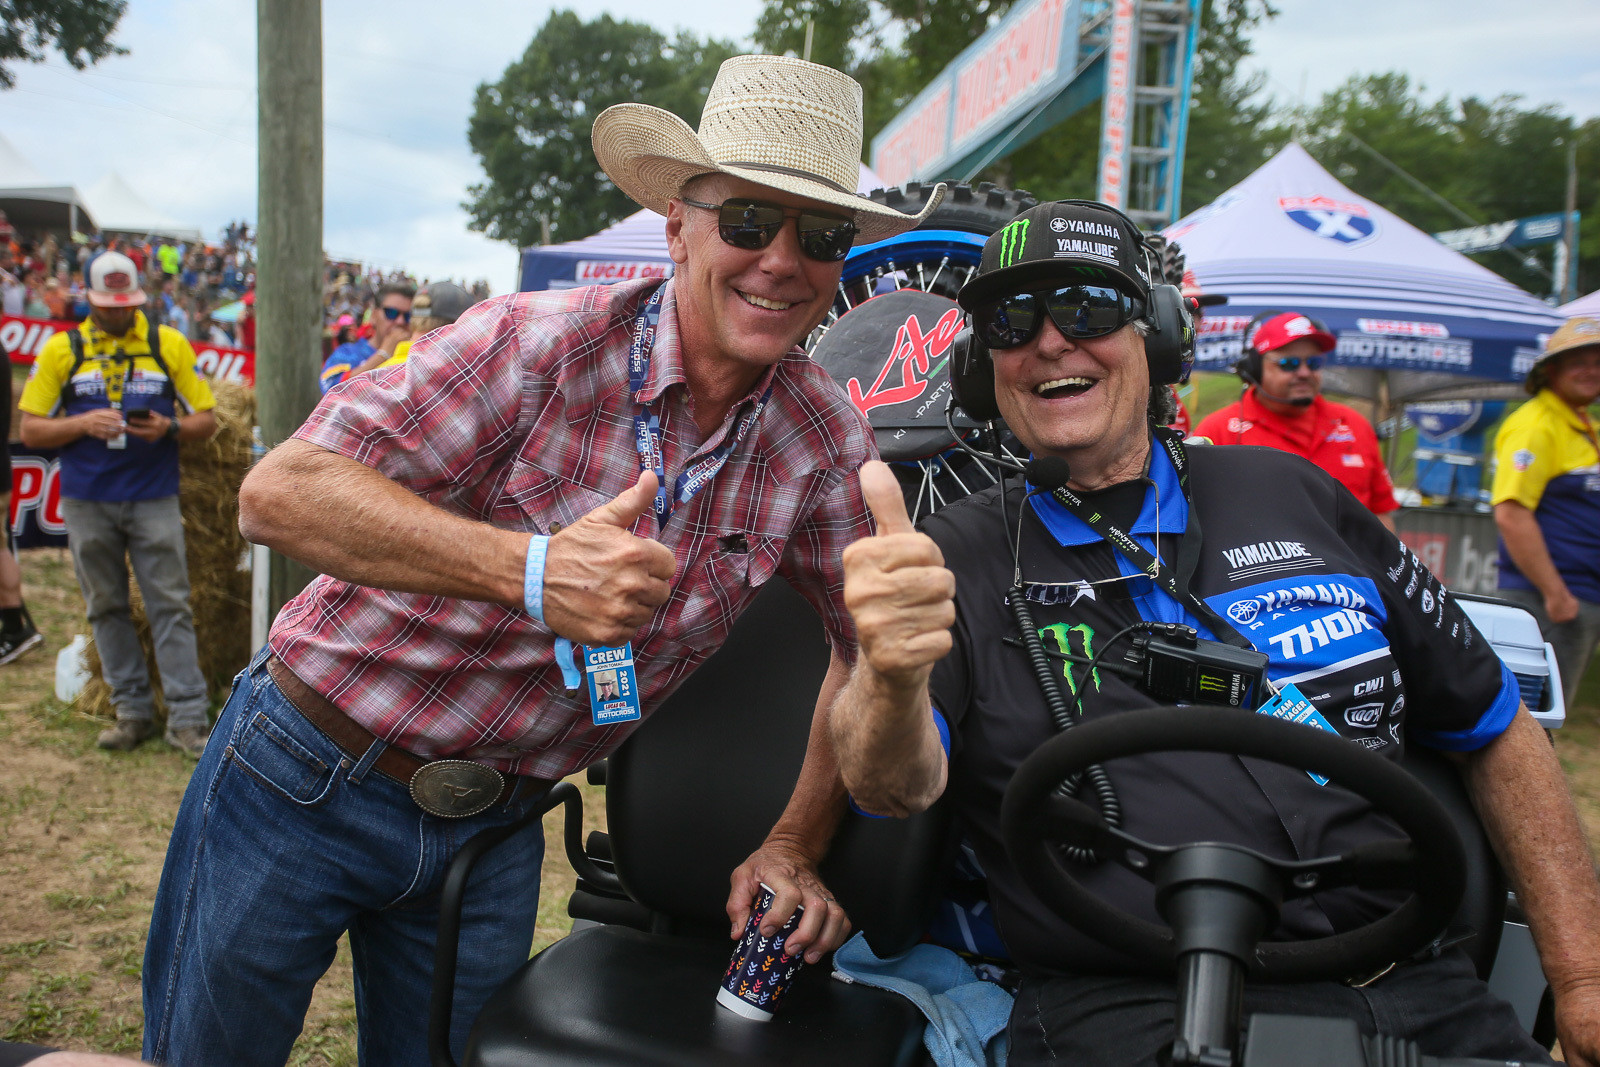 These two (John Tomac and Bobby Regan) seemed awfully happy to be at Southwick.